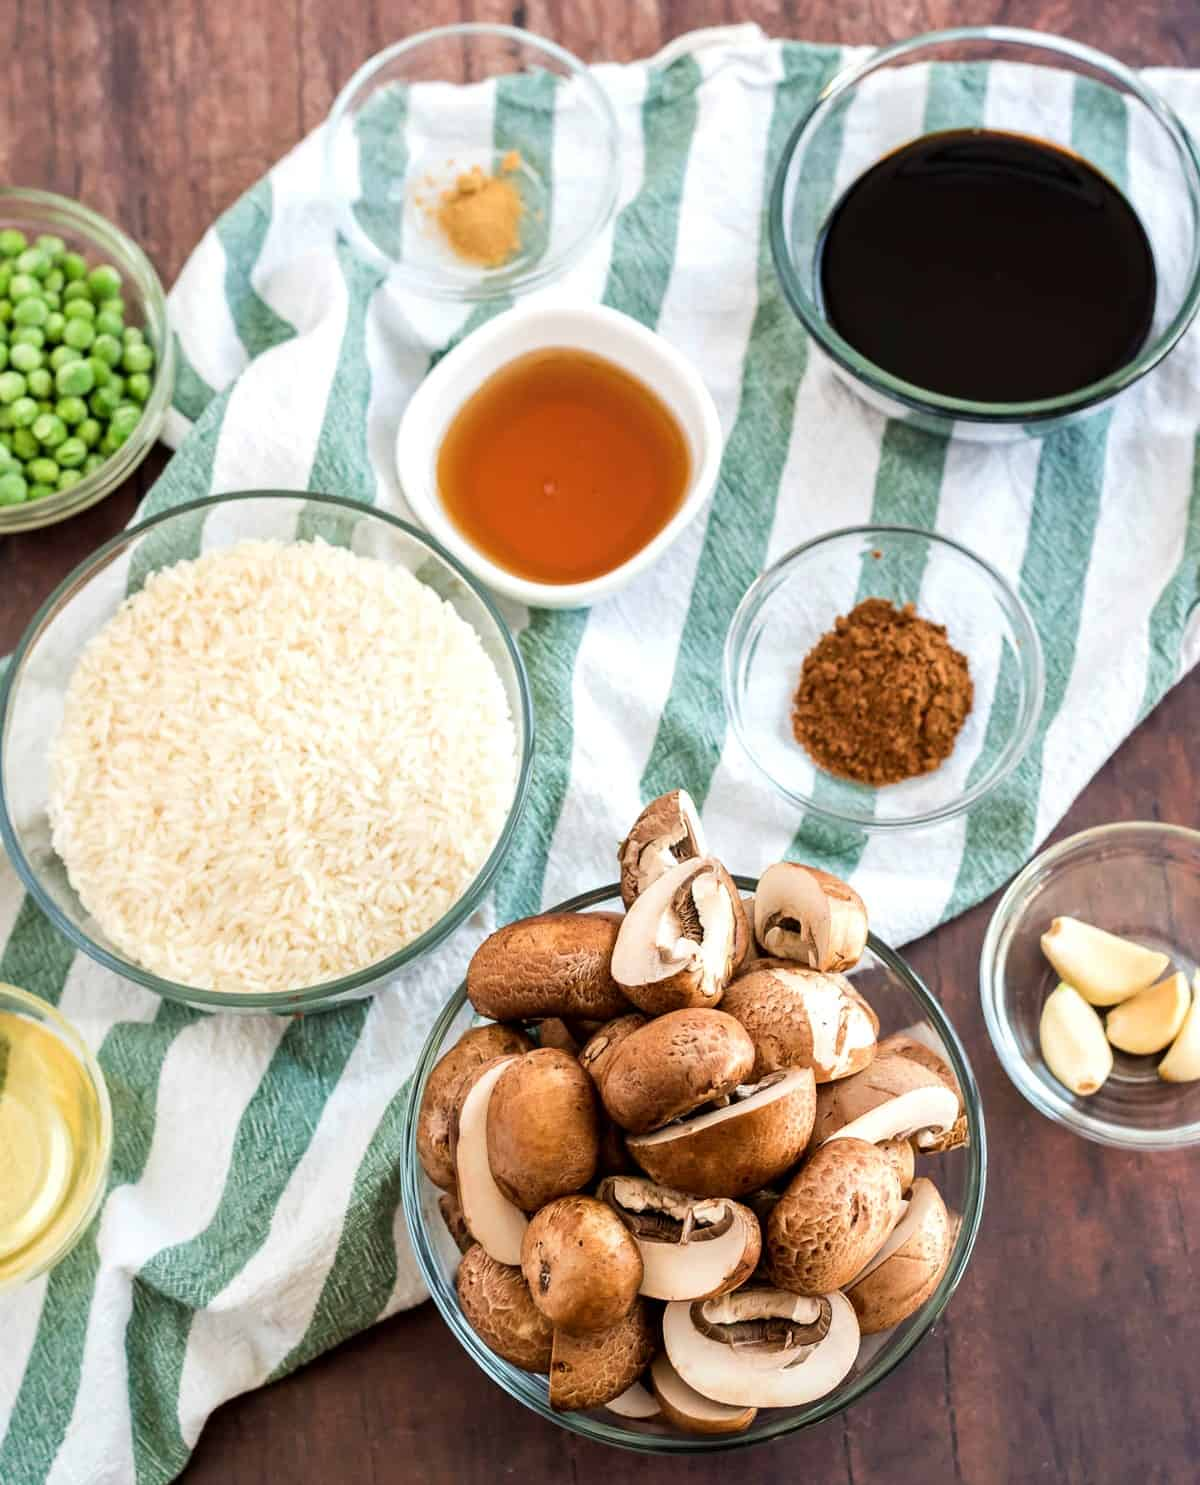 Overhead view of all of the ingredients for a comforting Asian meal are in their own small bowls and are sitting on a wooden table.